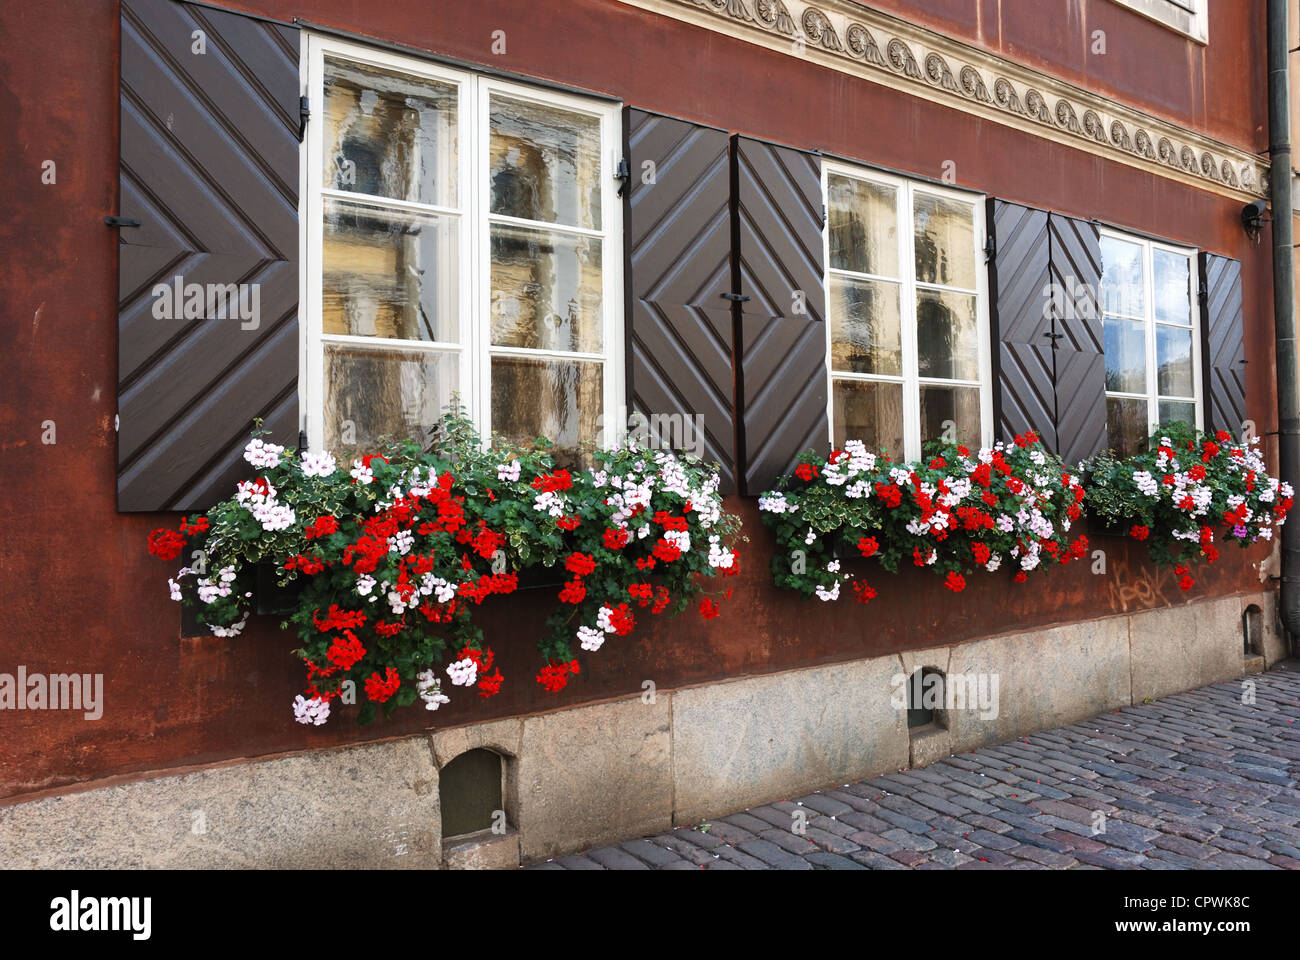 windows of antique house decorated with flowers - Stock Image